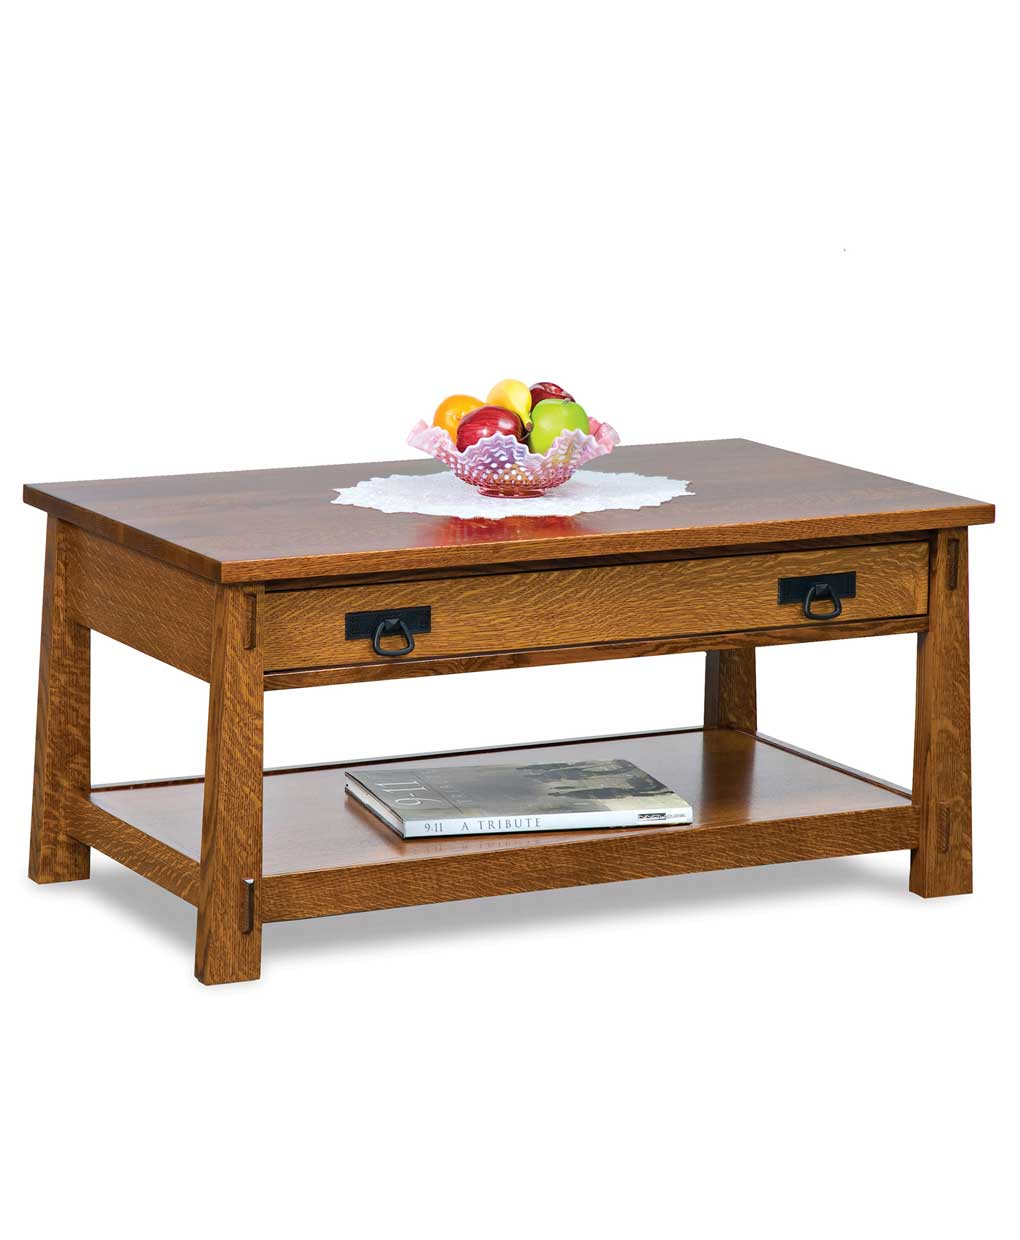 Letterpress Tray Coffee Table: Modesto Open Coffee Table With Drawer